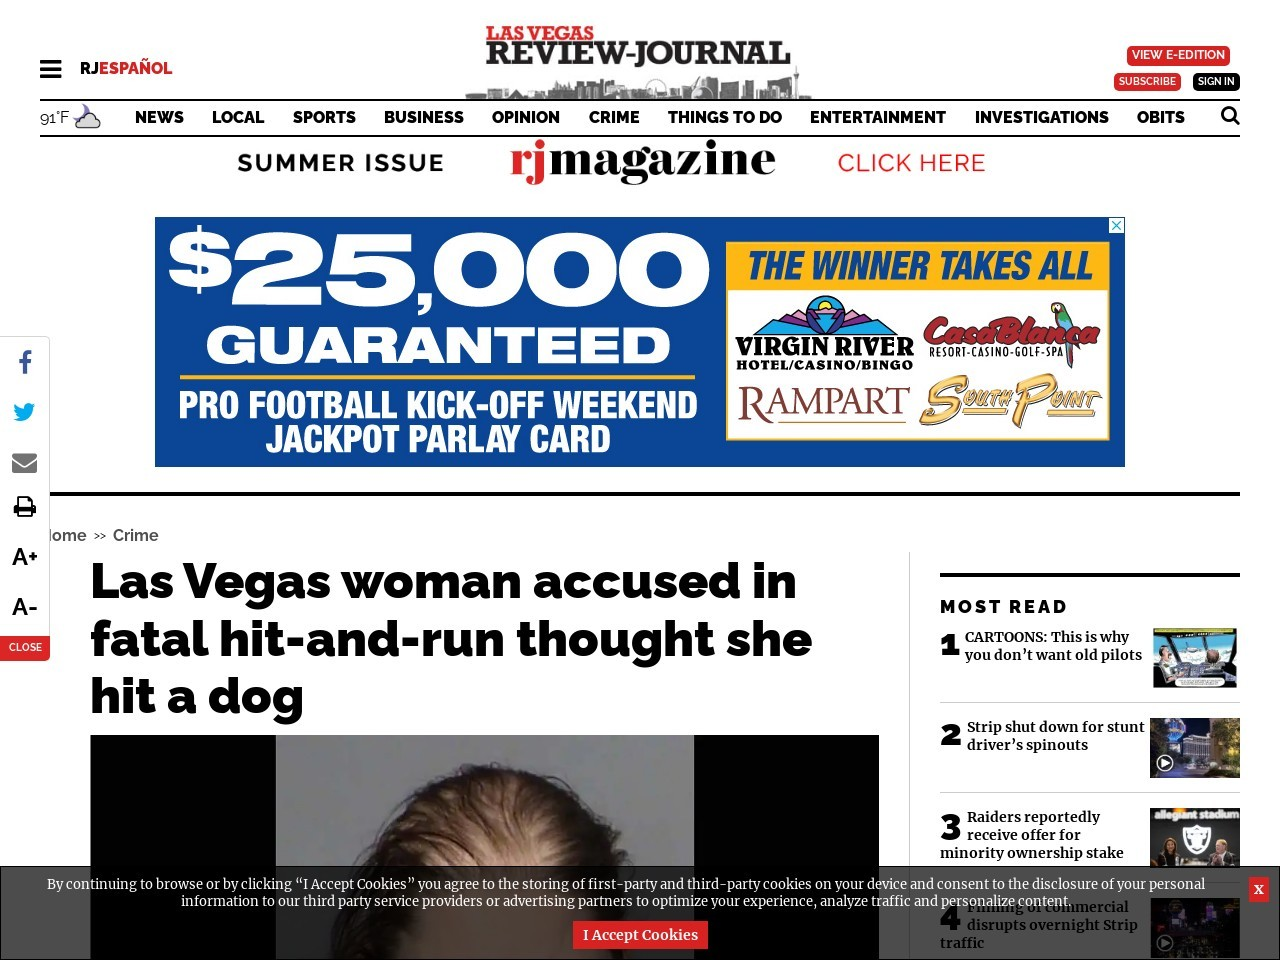 Las Vegas woman accused in fatal hit-and-run thought she hit a dog